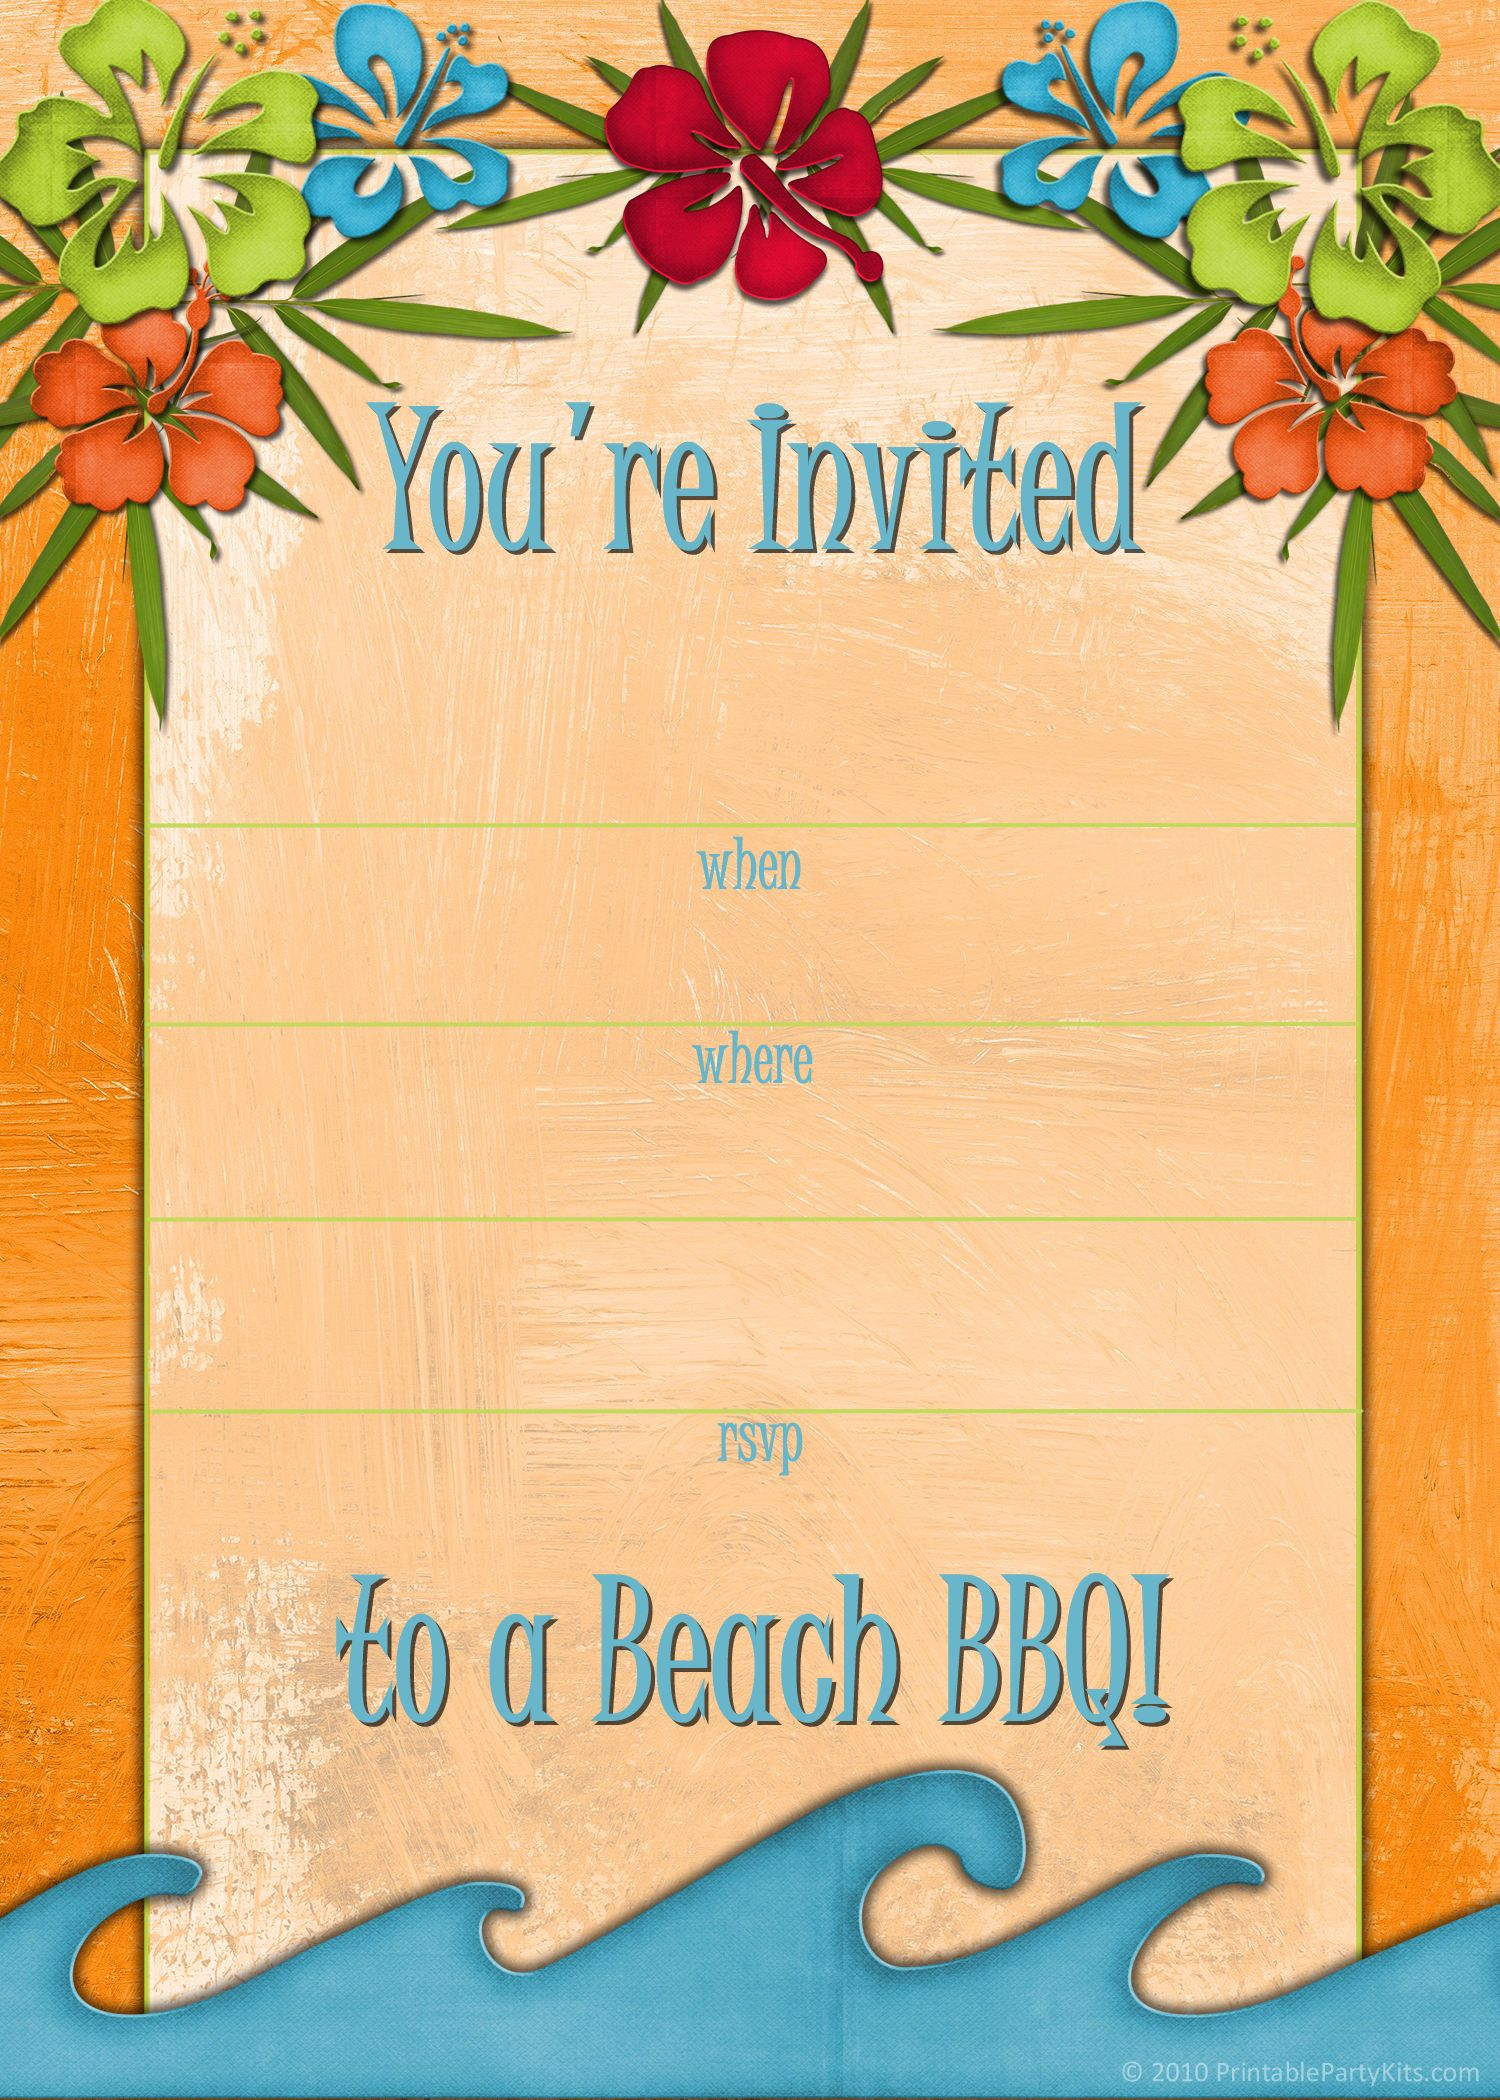 Free Printable Beach Party Luau And BBQ Invitations Templates